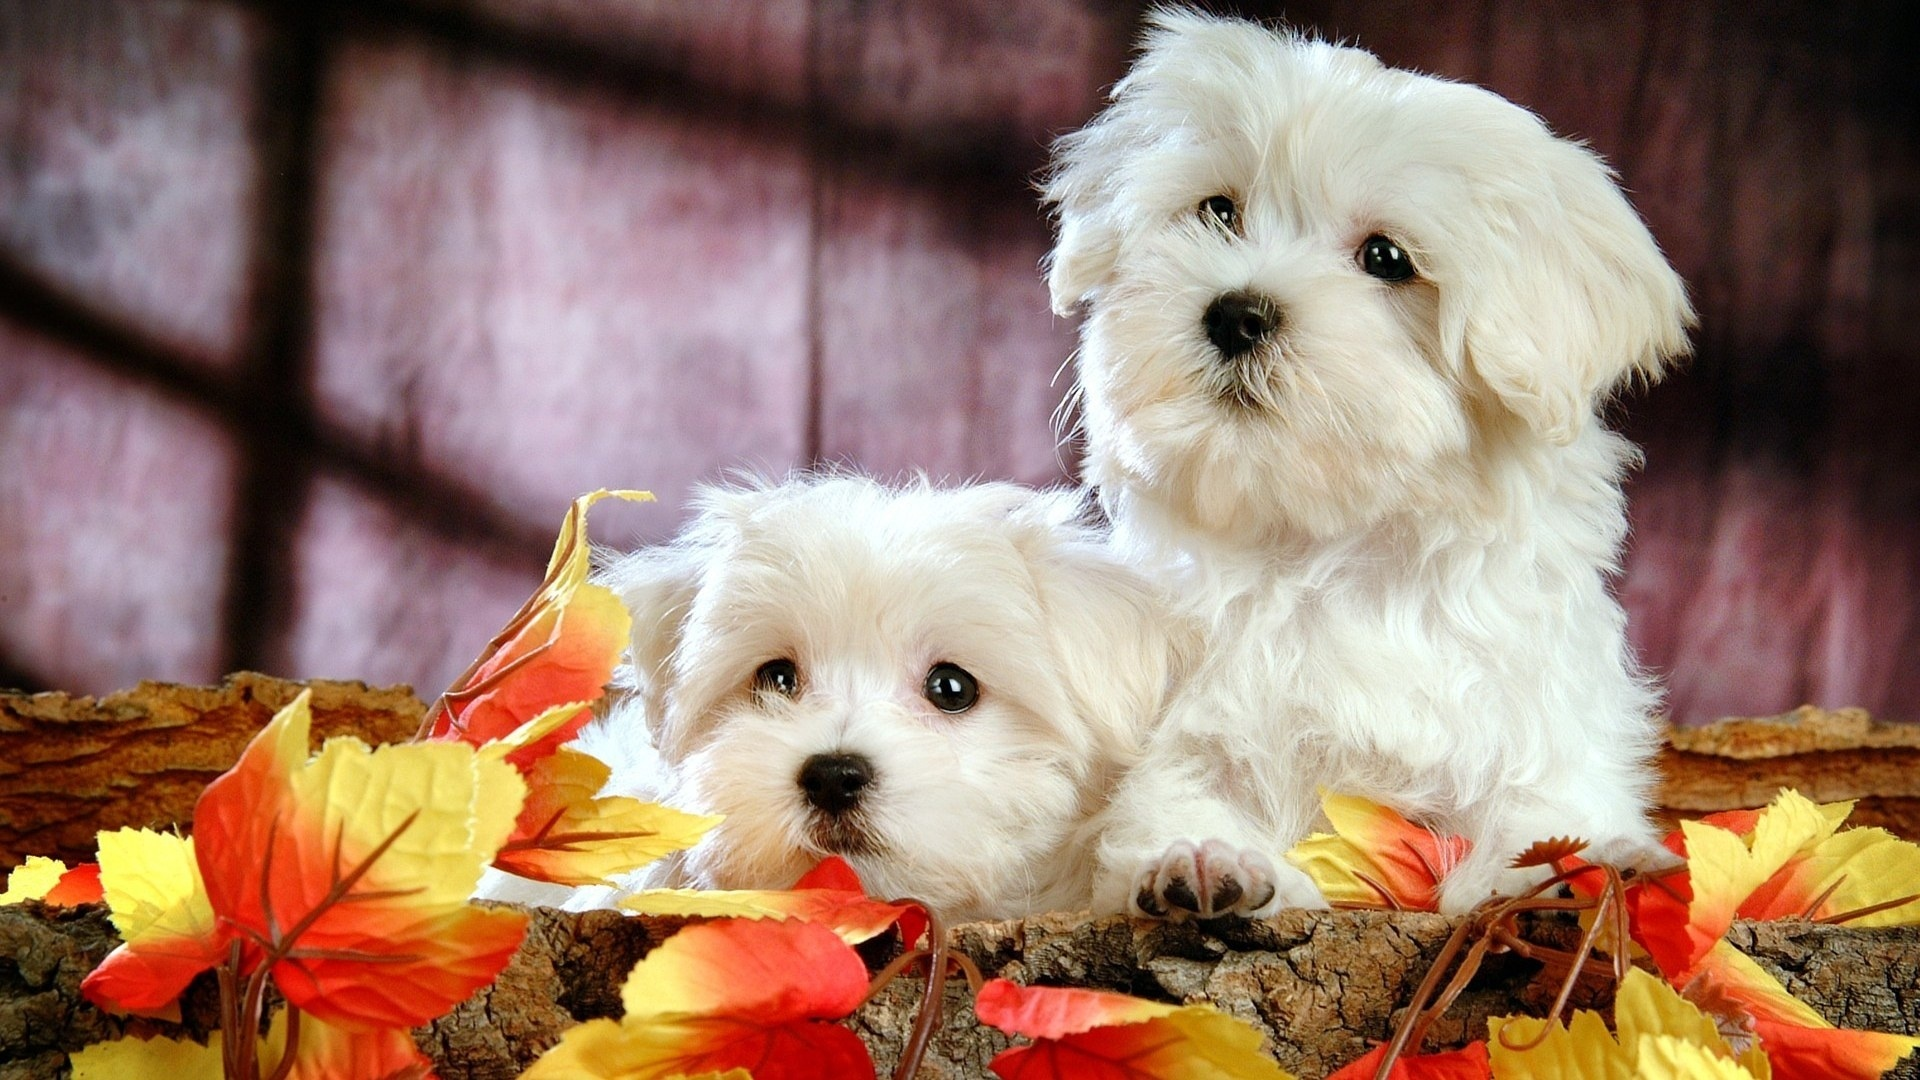 Cute Bichon Puppies HD Desktop Wallpaper HD Desktop Wallpaper 1920x1080